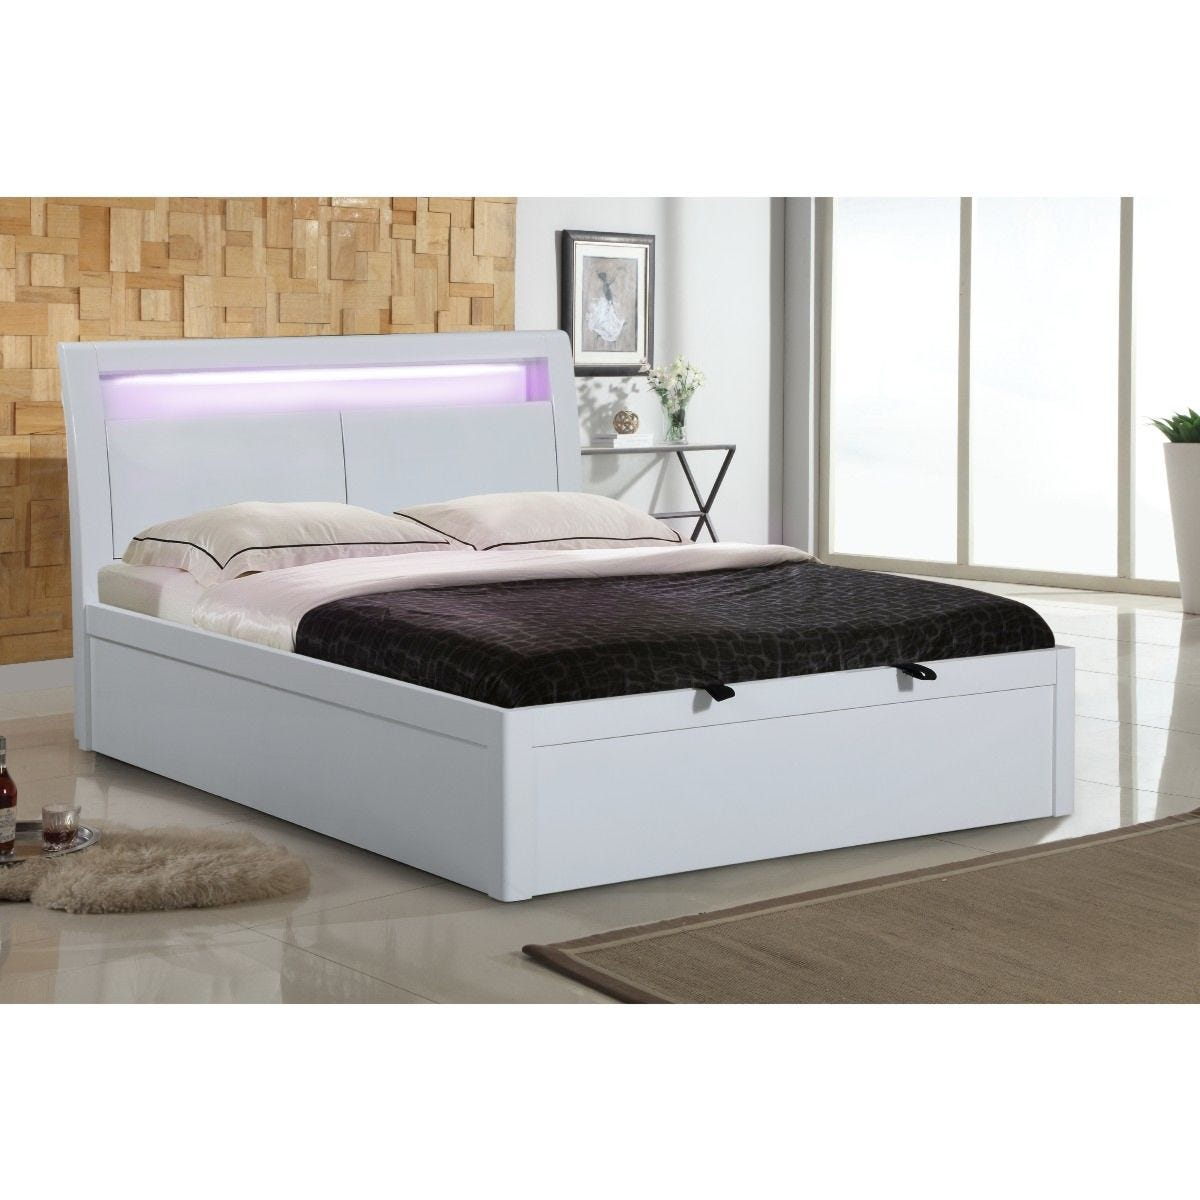 Tanya Storage High Gloss King Size Bed With LED Light White